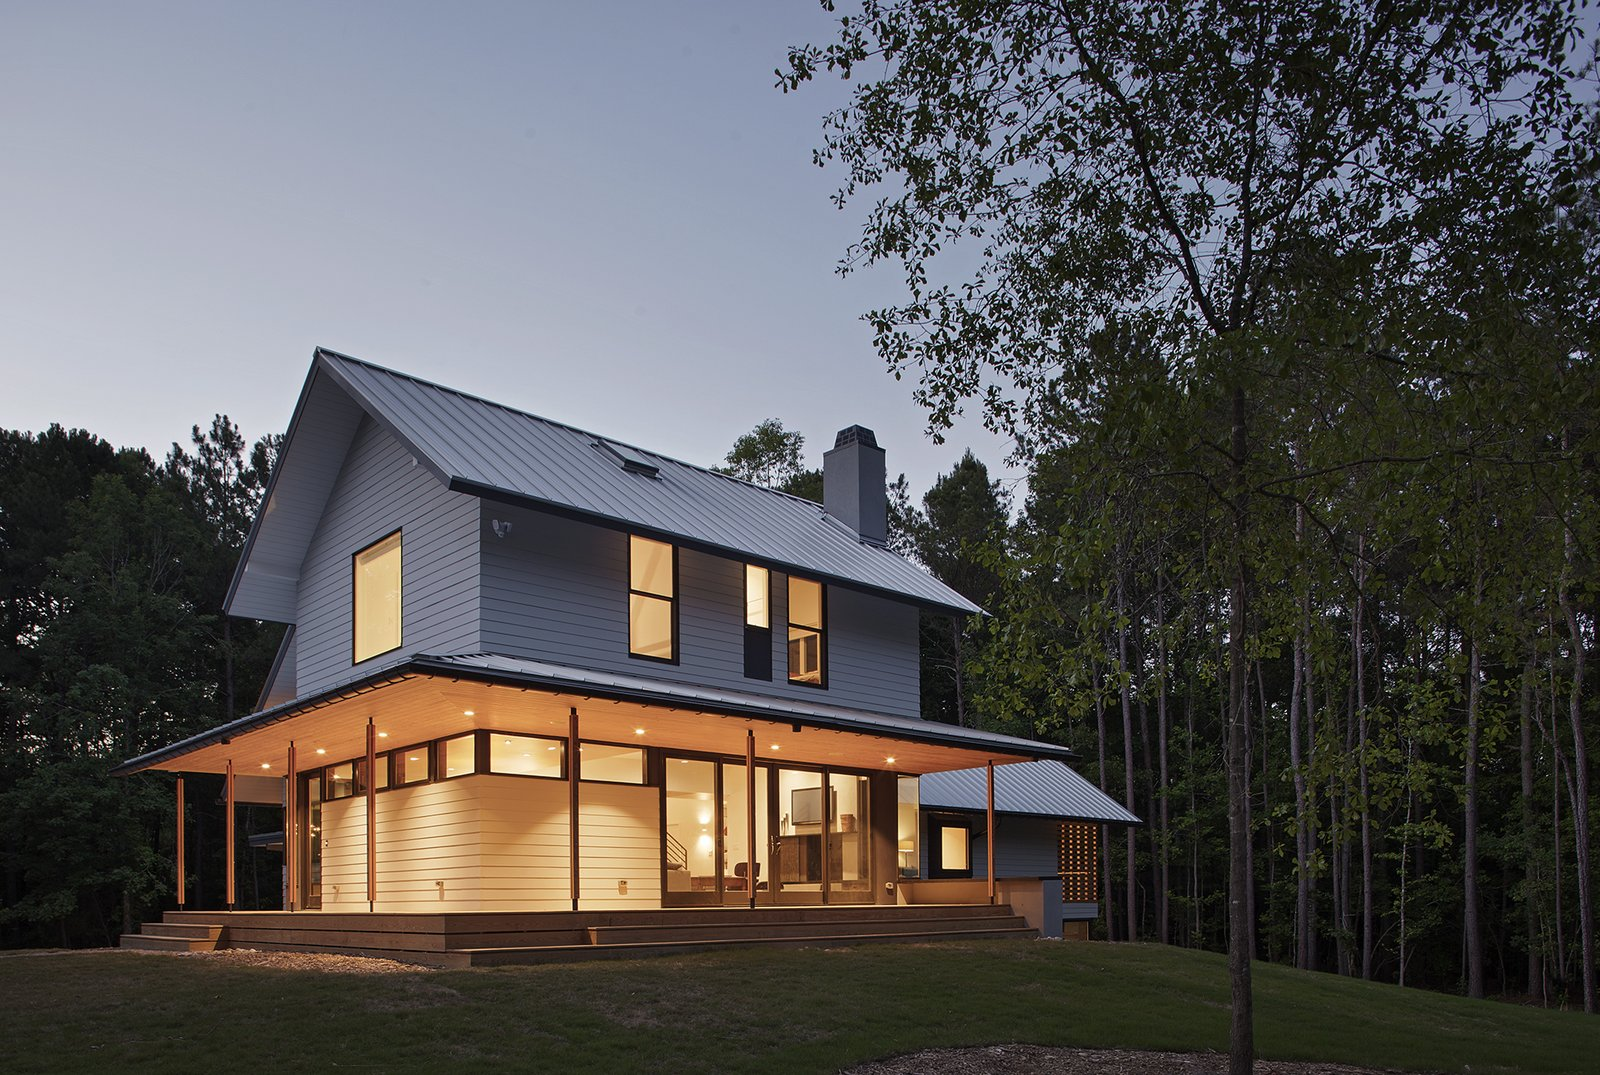 The Farmhouse Modern Home In North Carolina By In Situ